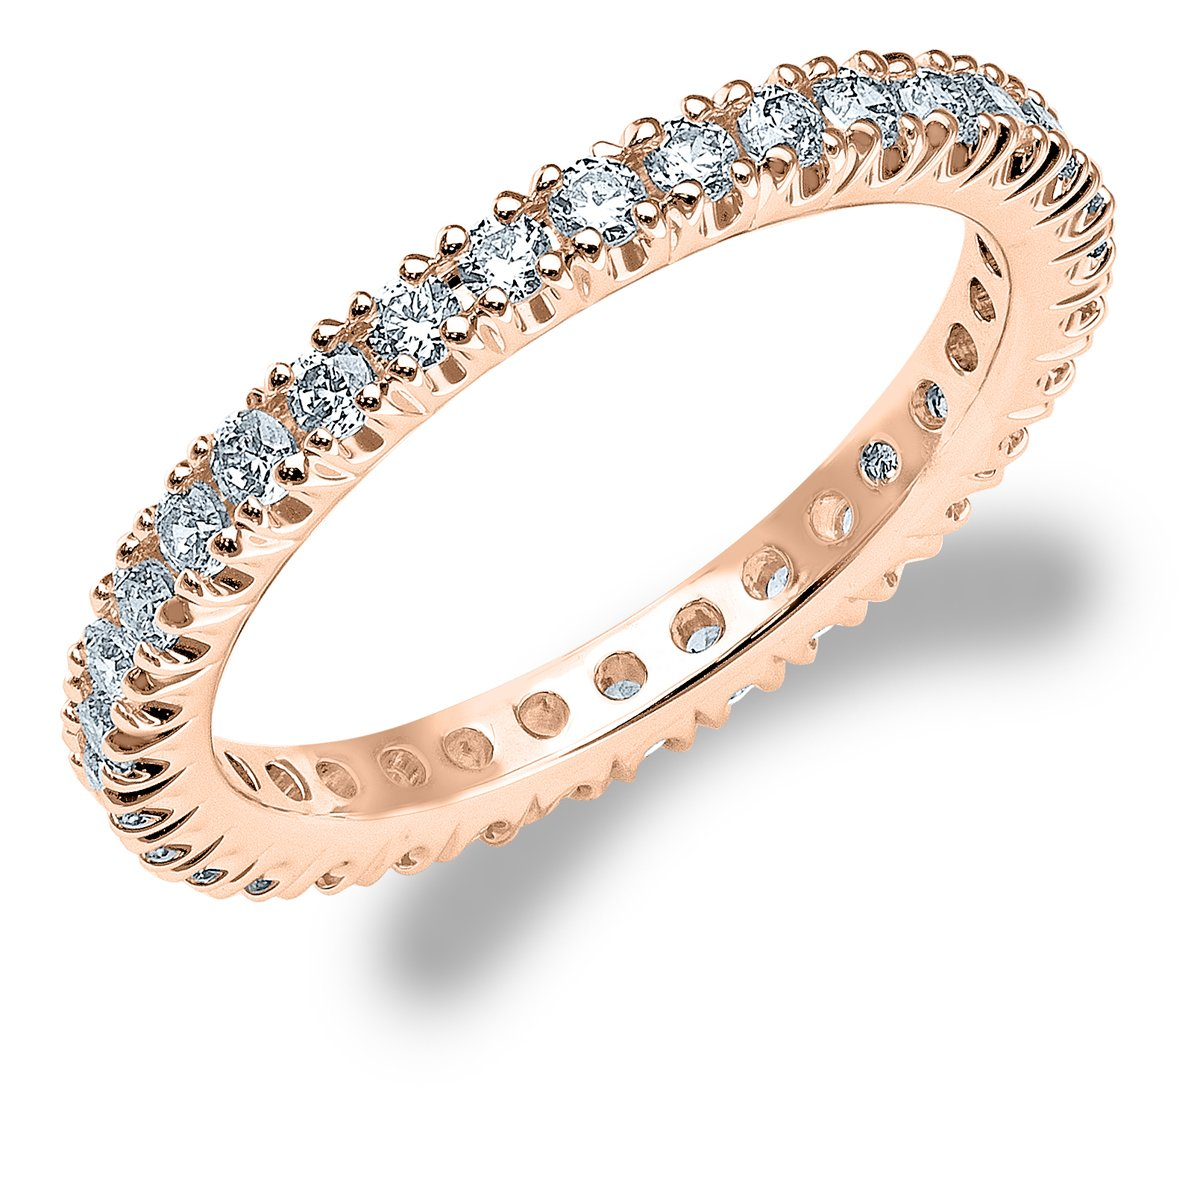 0.75 CTTW Women's Diamond 4-Prong Eternity Band in 14K Rose Gold(.75 cttw, F-G Color, VS1-VS2 Clarity) Size 10